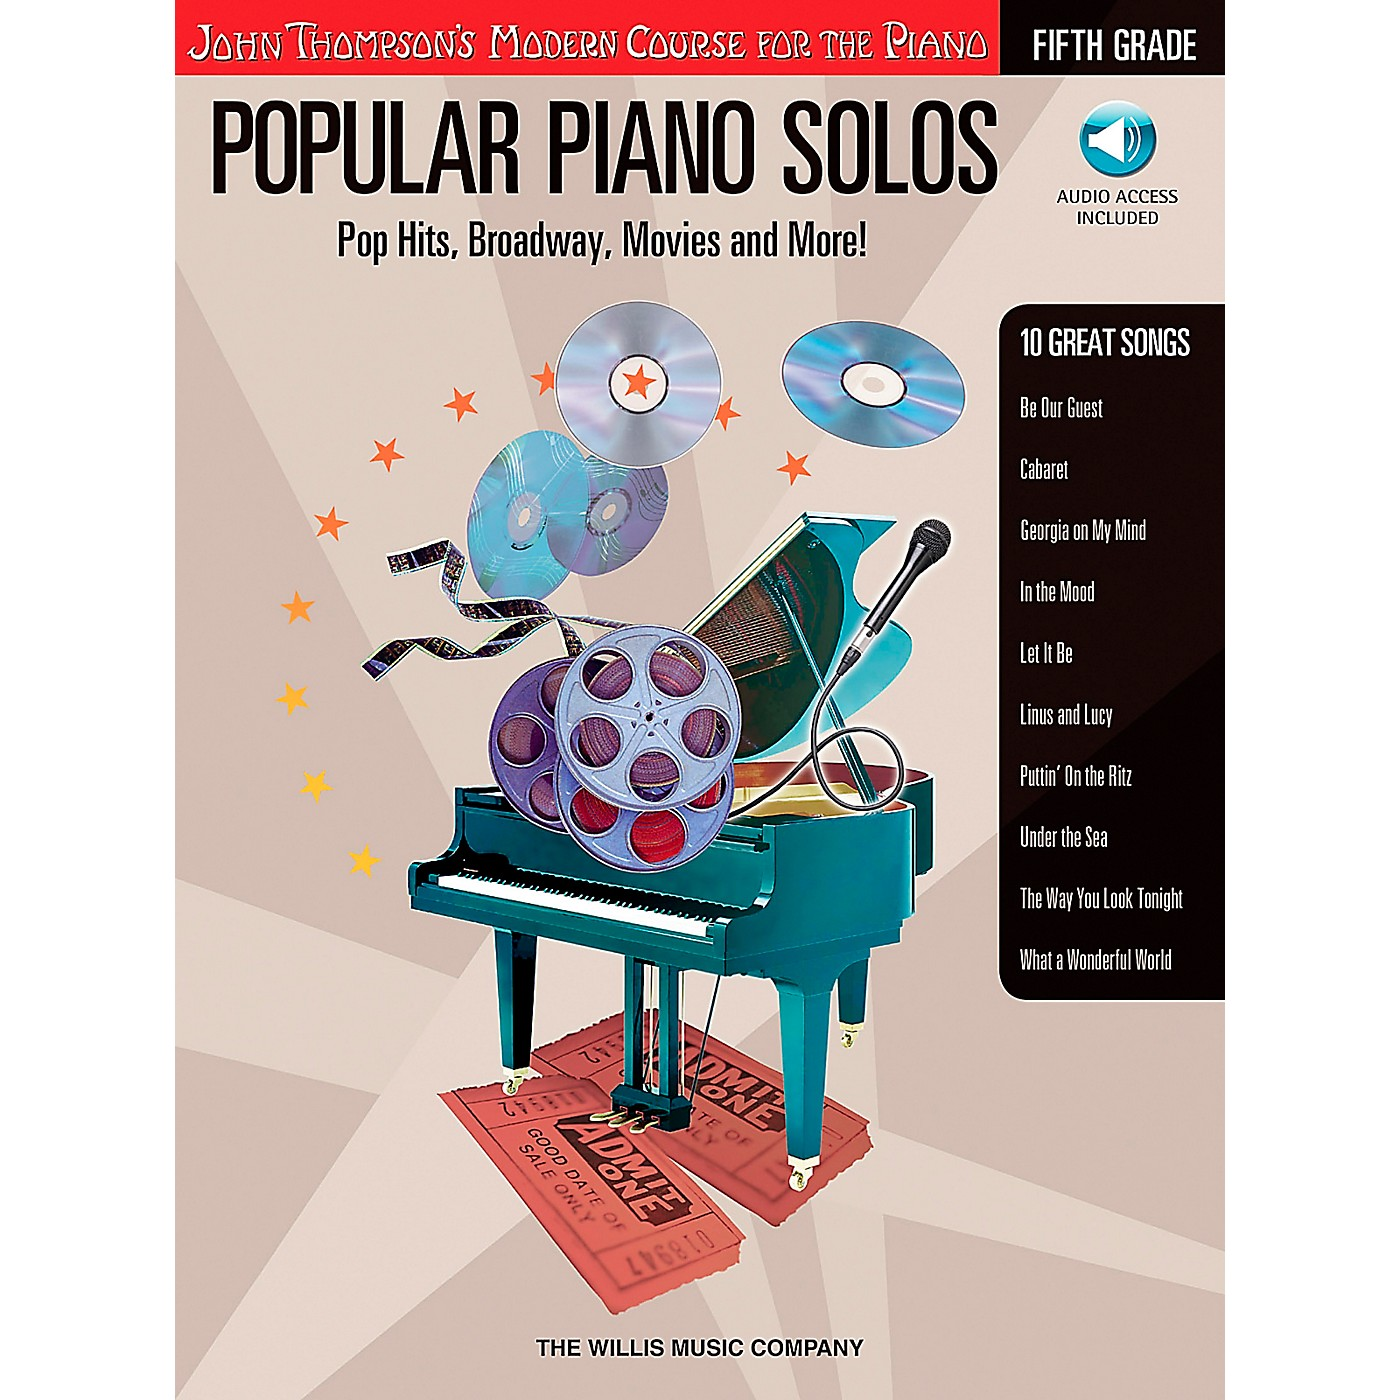 Willis Music John Thompson's Modern Course for The Piano - Popular Piano Solos Fifth Grade Book/CD thumbnail